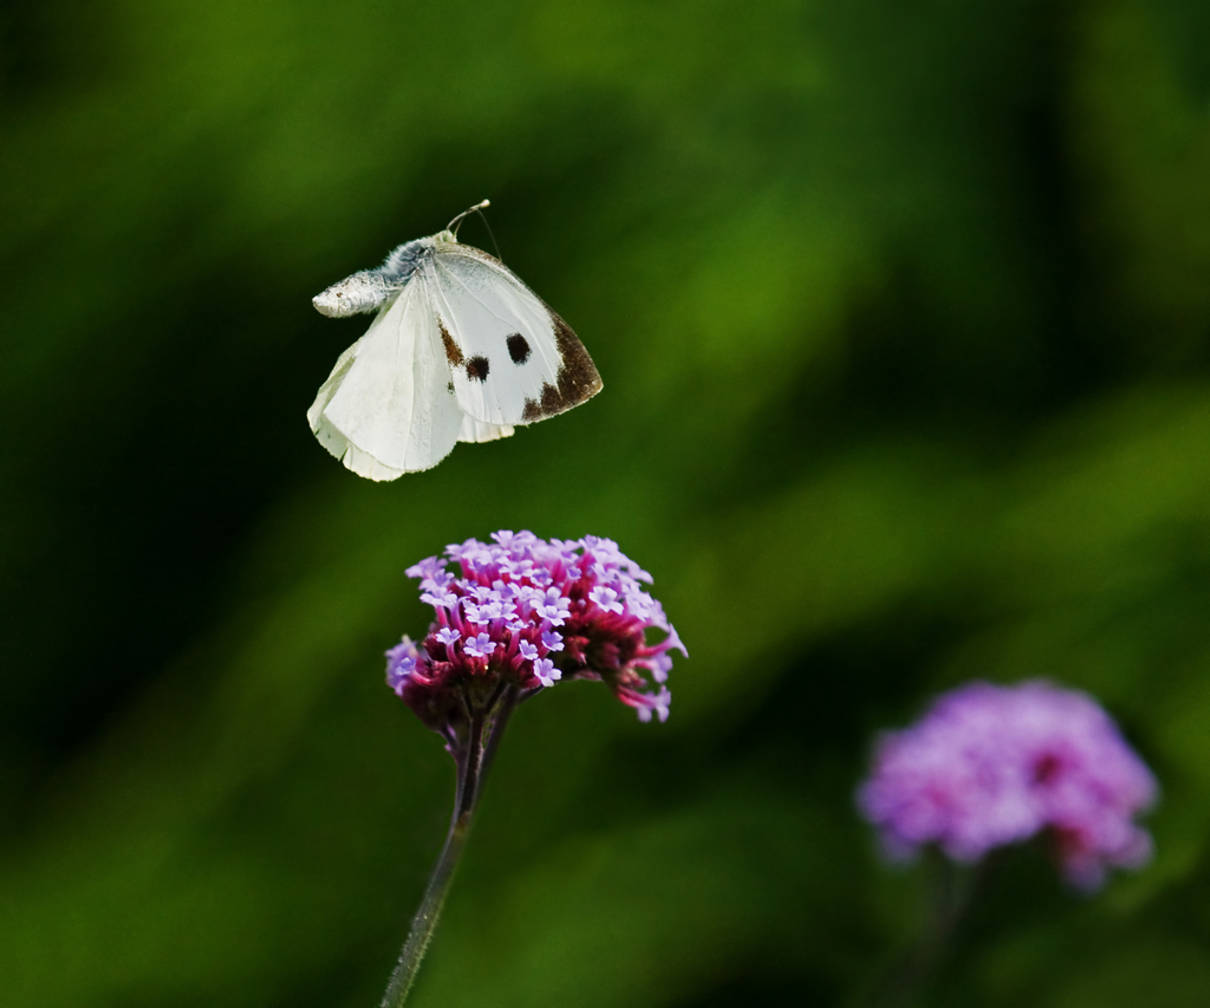 images of butterflies flying - photo #41